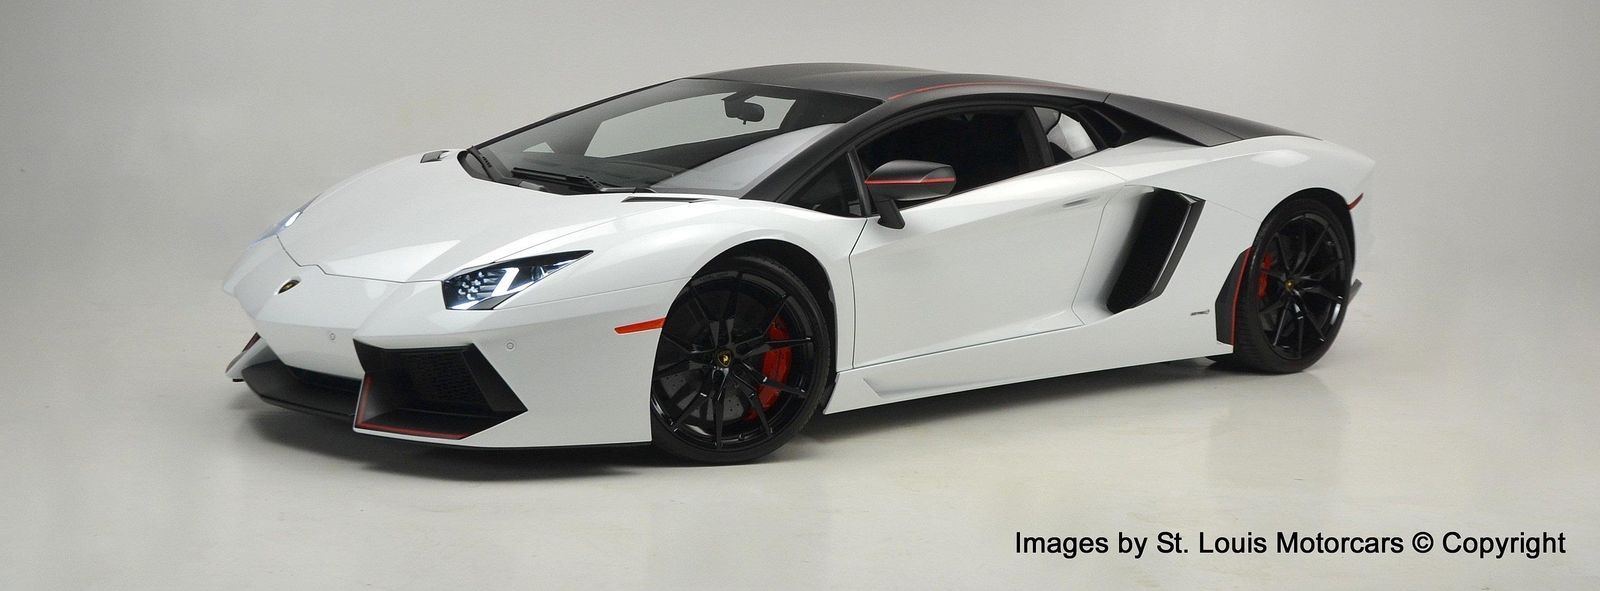 cool Great Aventador LP 700 4 Pirelli Edition 2016 Lamborghini